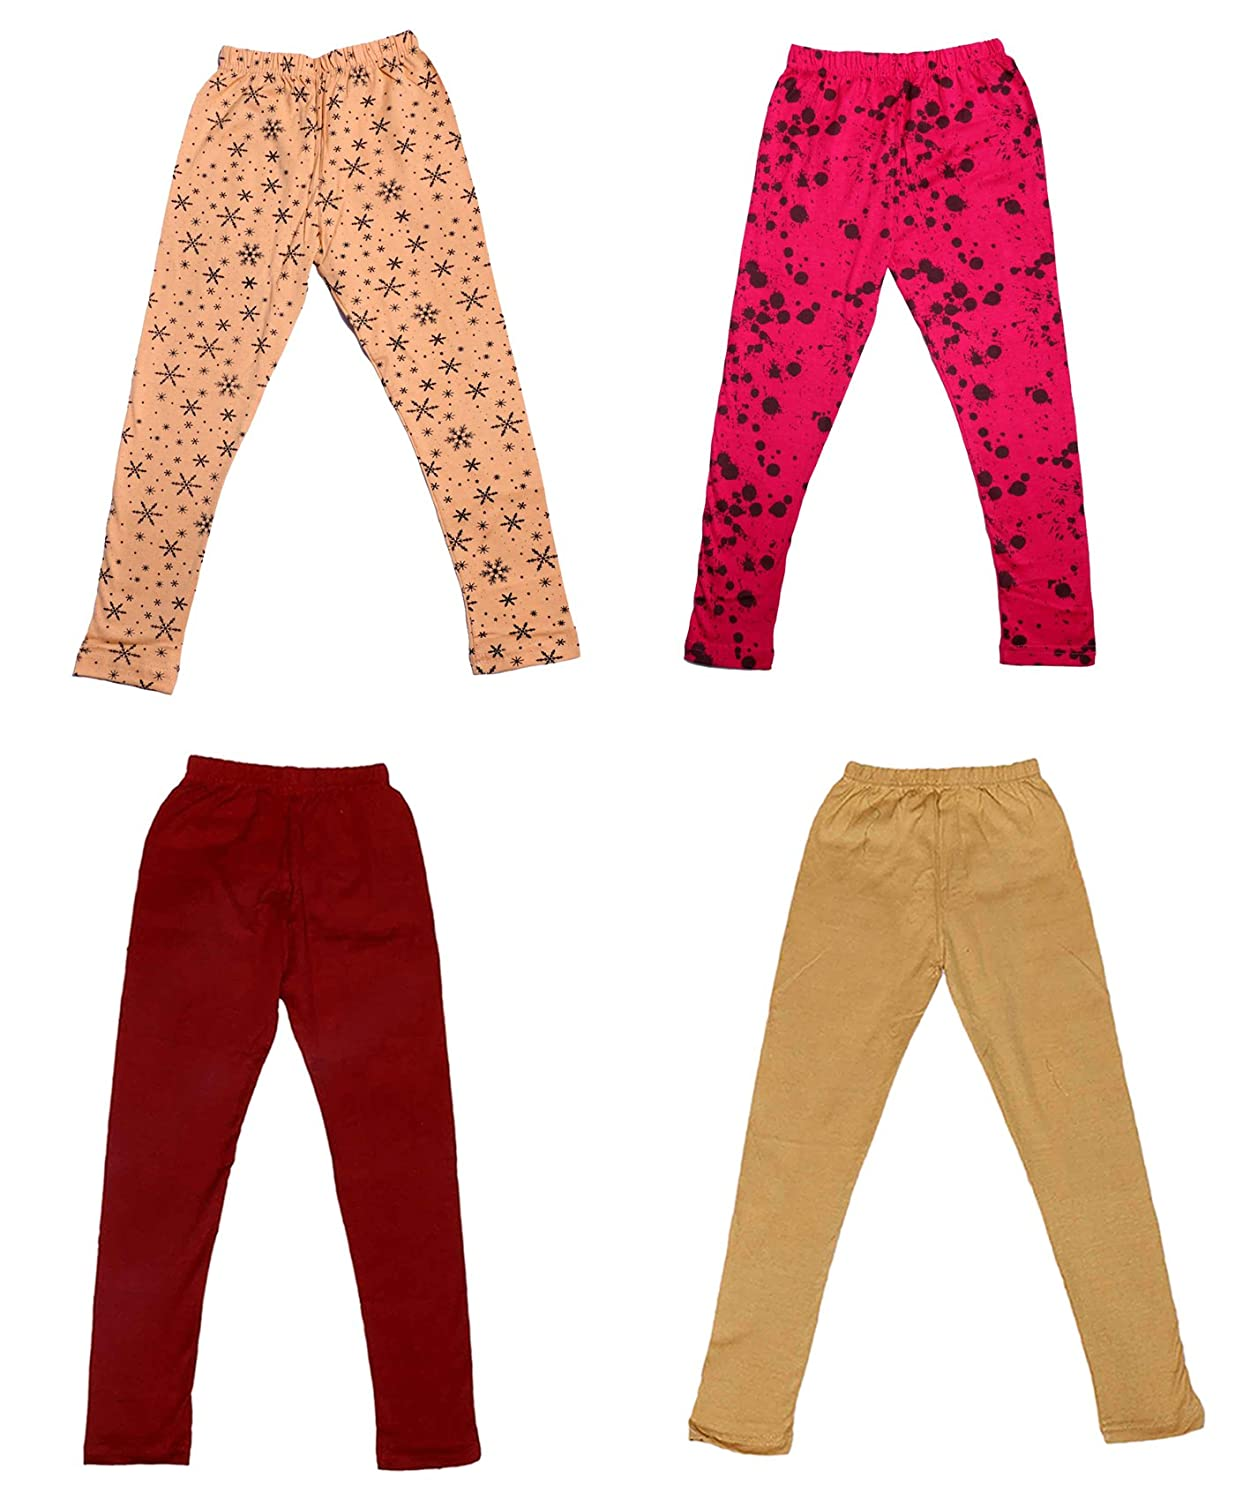 and 2 Cotton Printed Legging Pants Indistar Girls 2 Cotton Solid Legging Pants /_Multicolor/_Size-4-5 Years/_71400011920-IW-P4-26 Pack Of 4